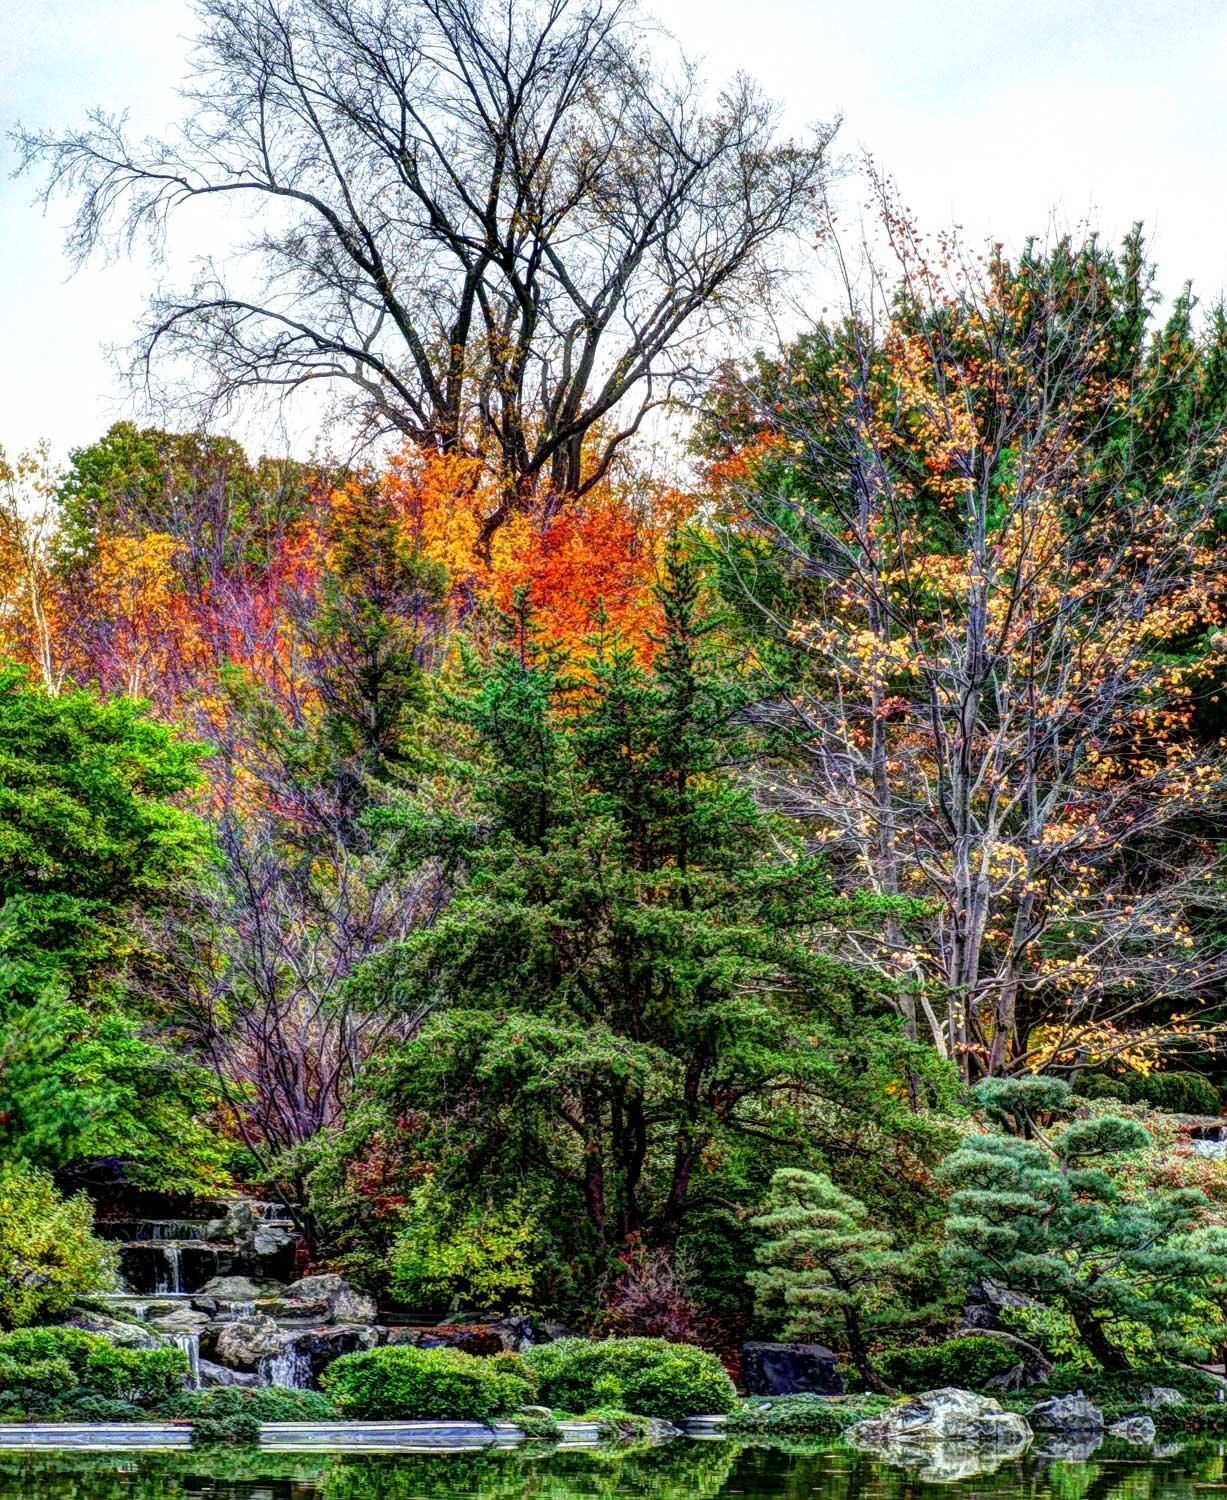 Autumn on the Japanese Garden by Luc2